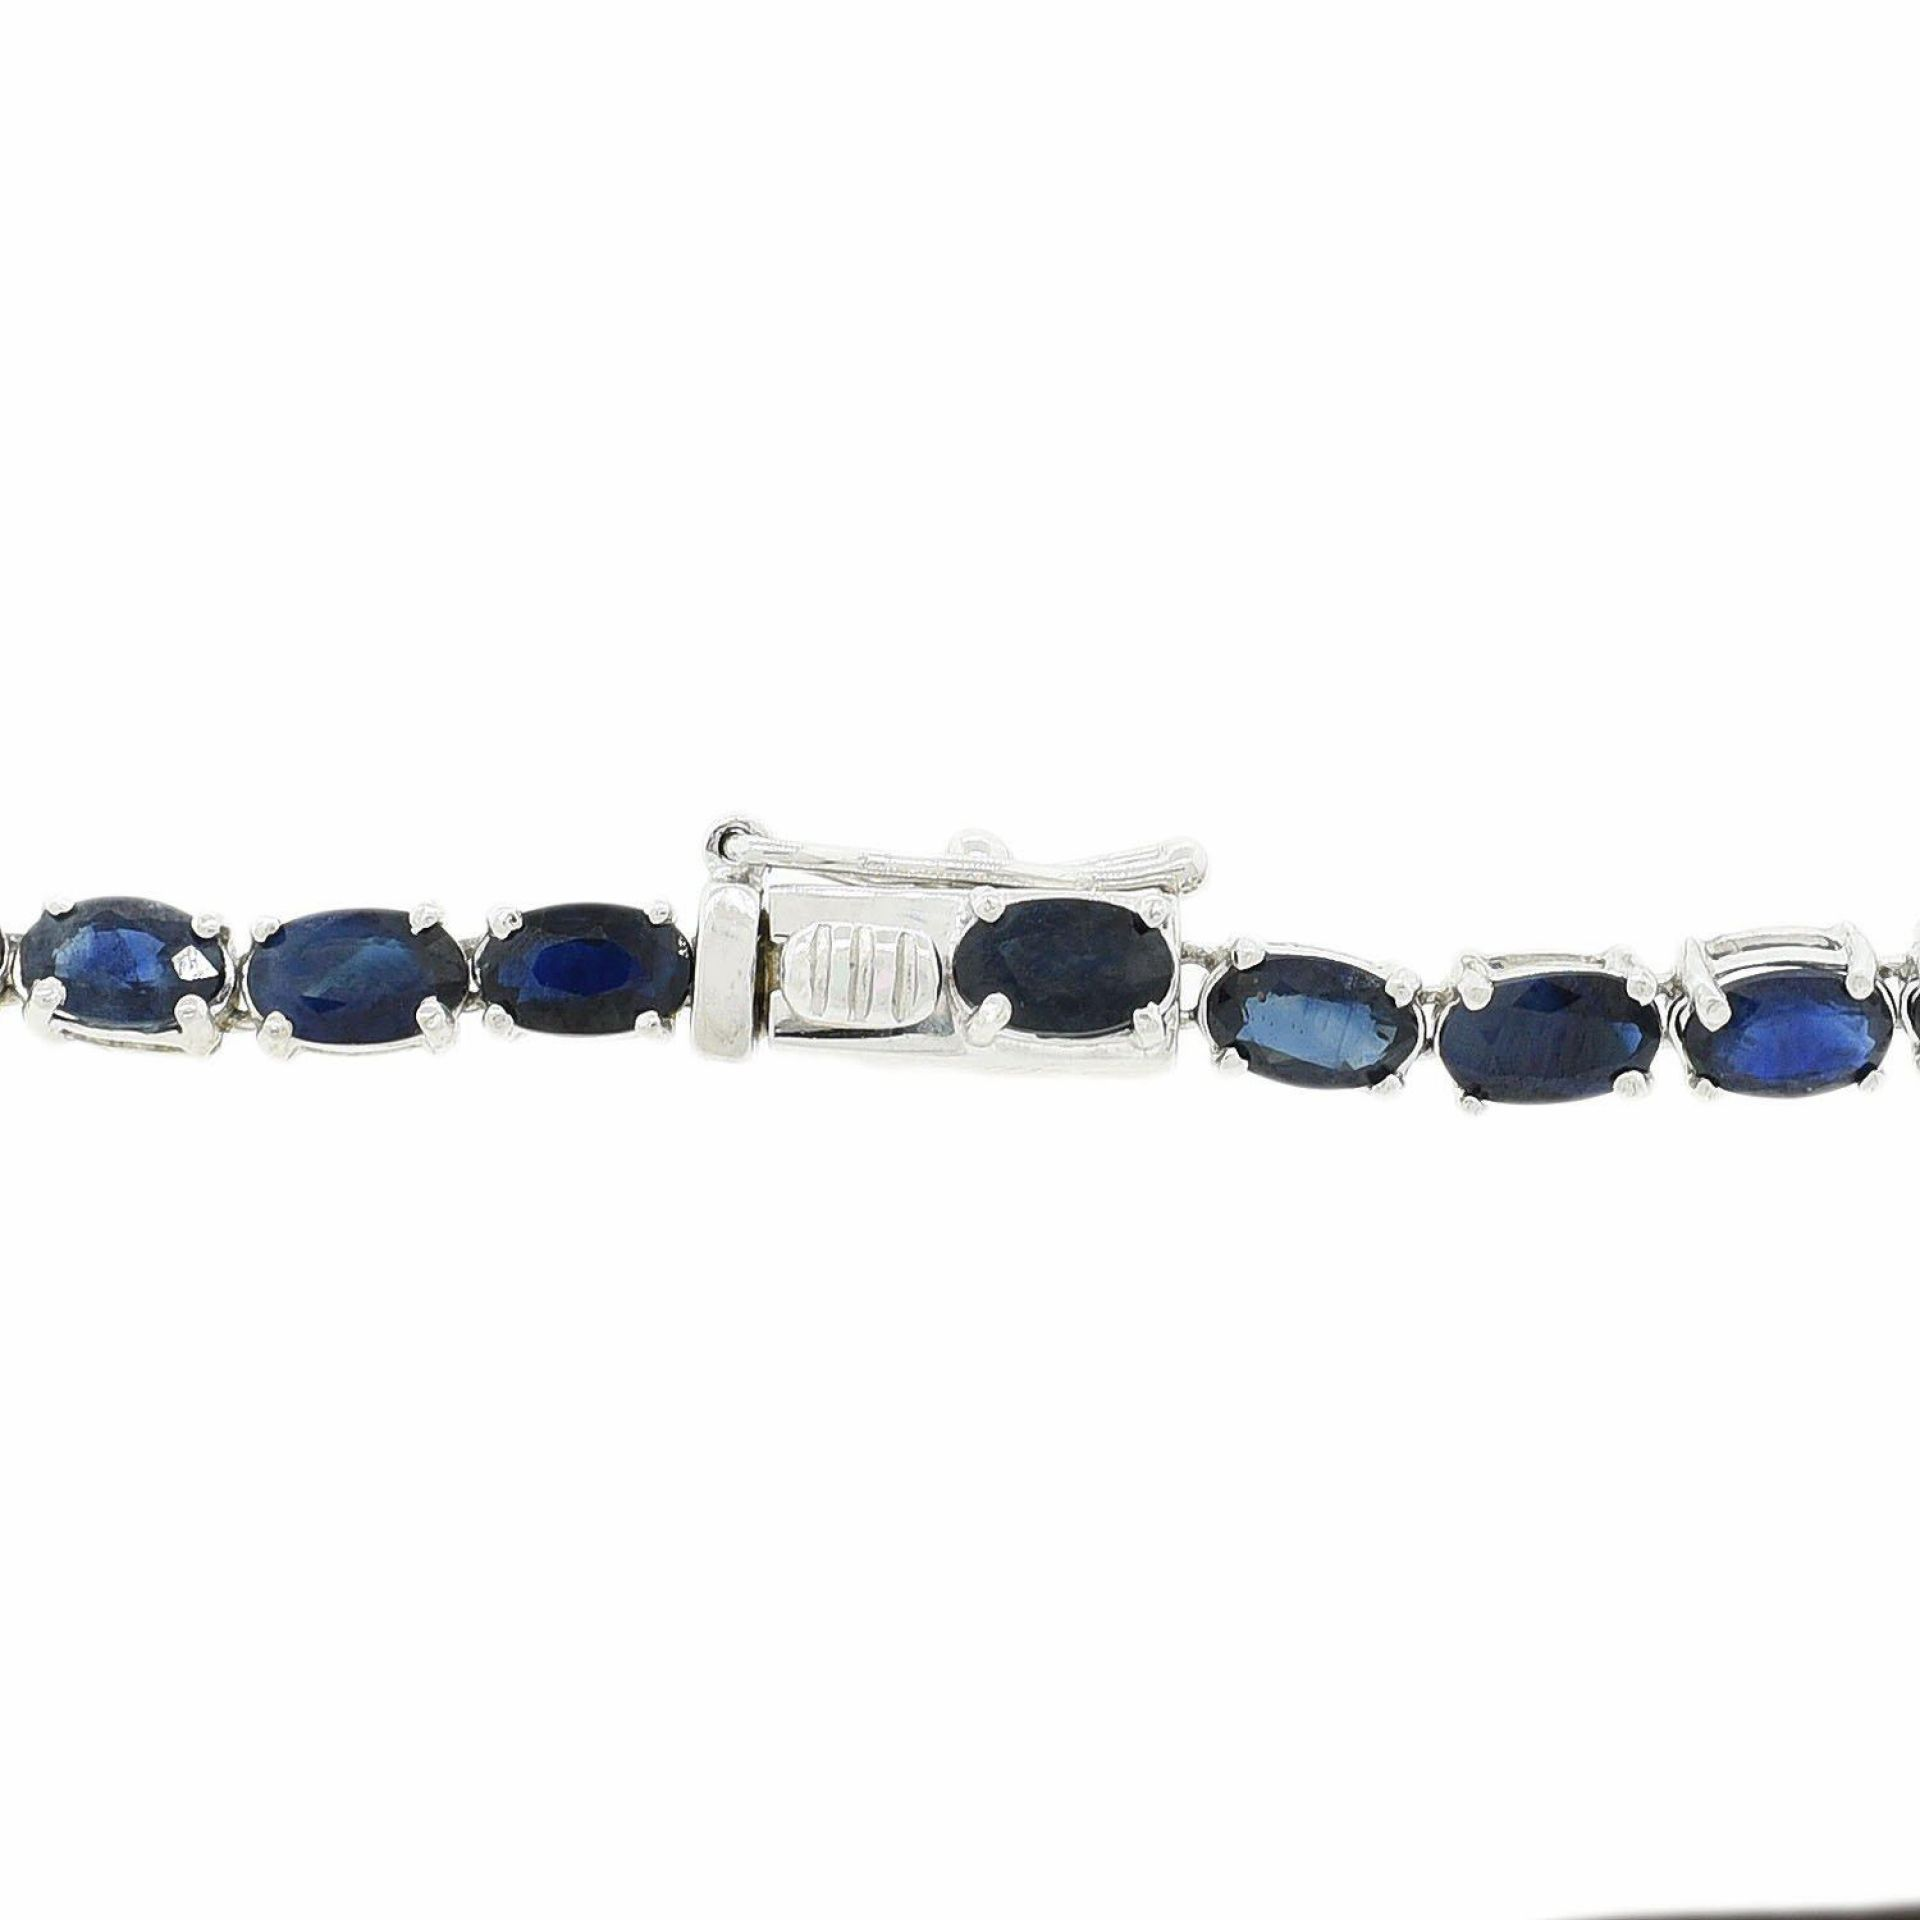 36.71ctw Blue Sapphire and 0.49ctw Diamond 14K White Gold Necklace